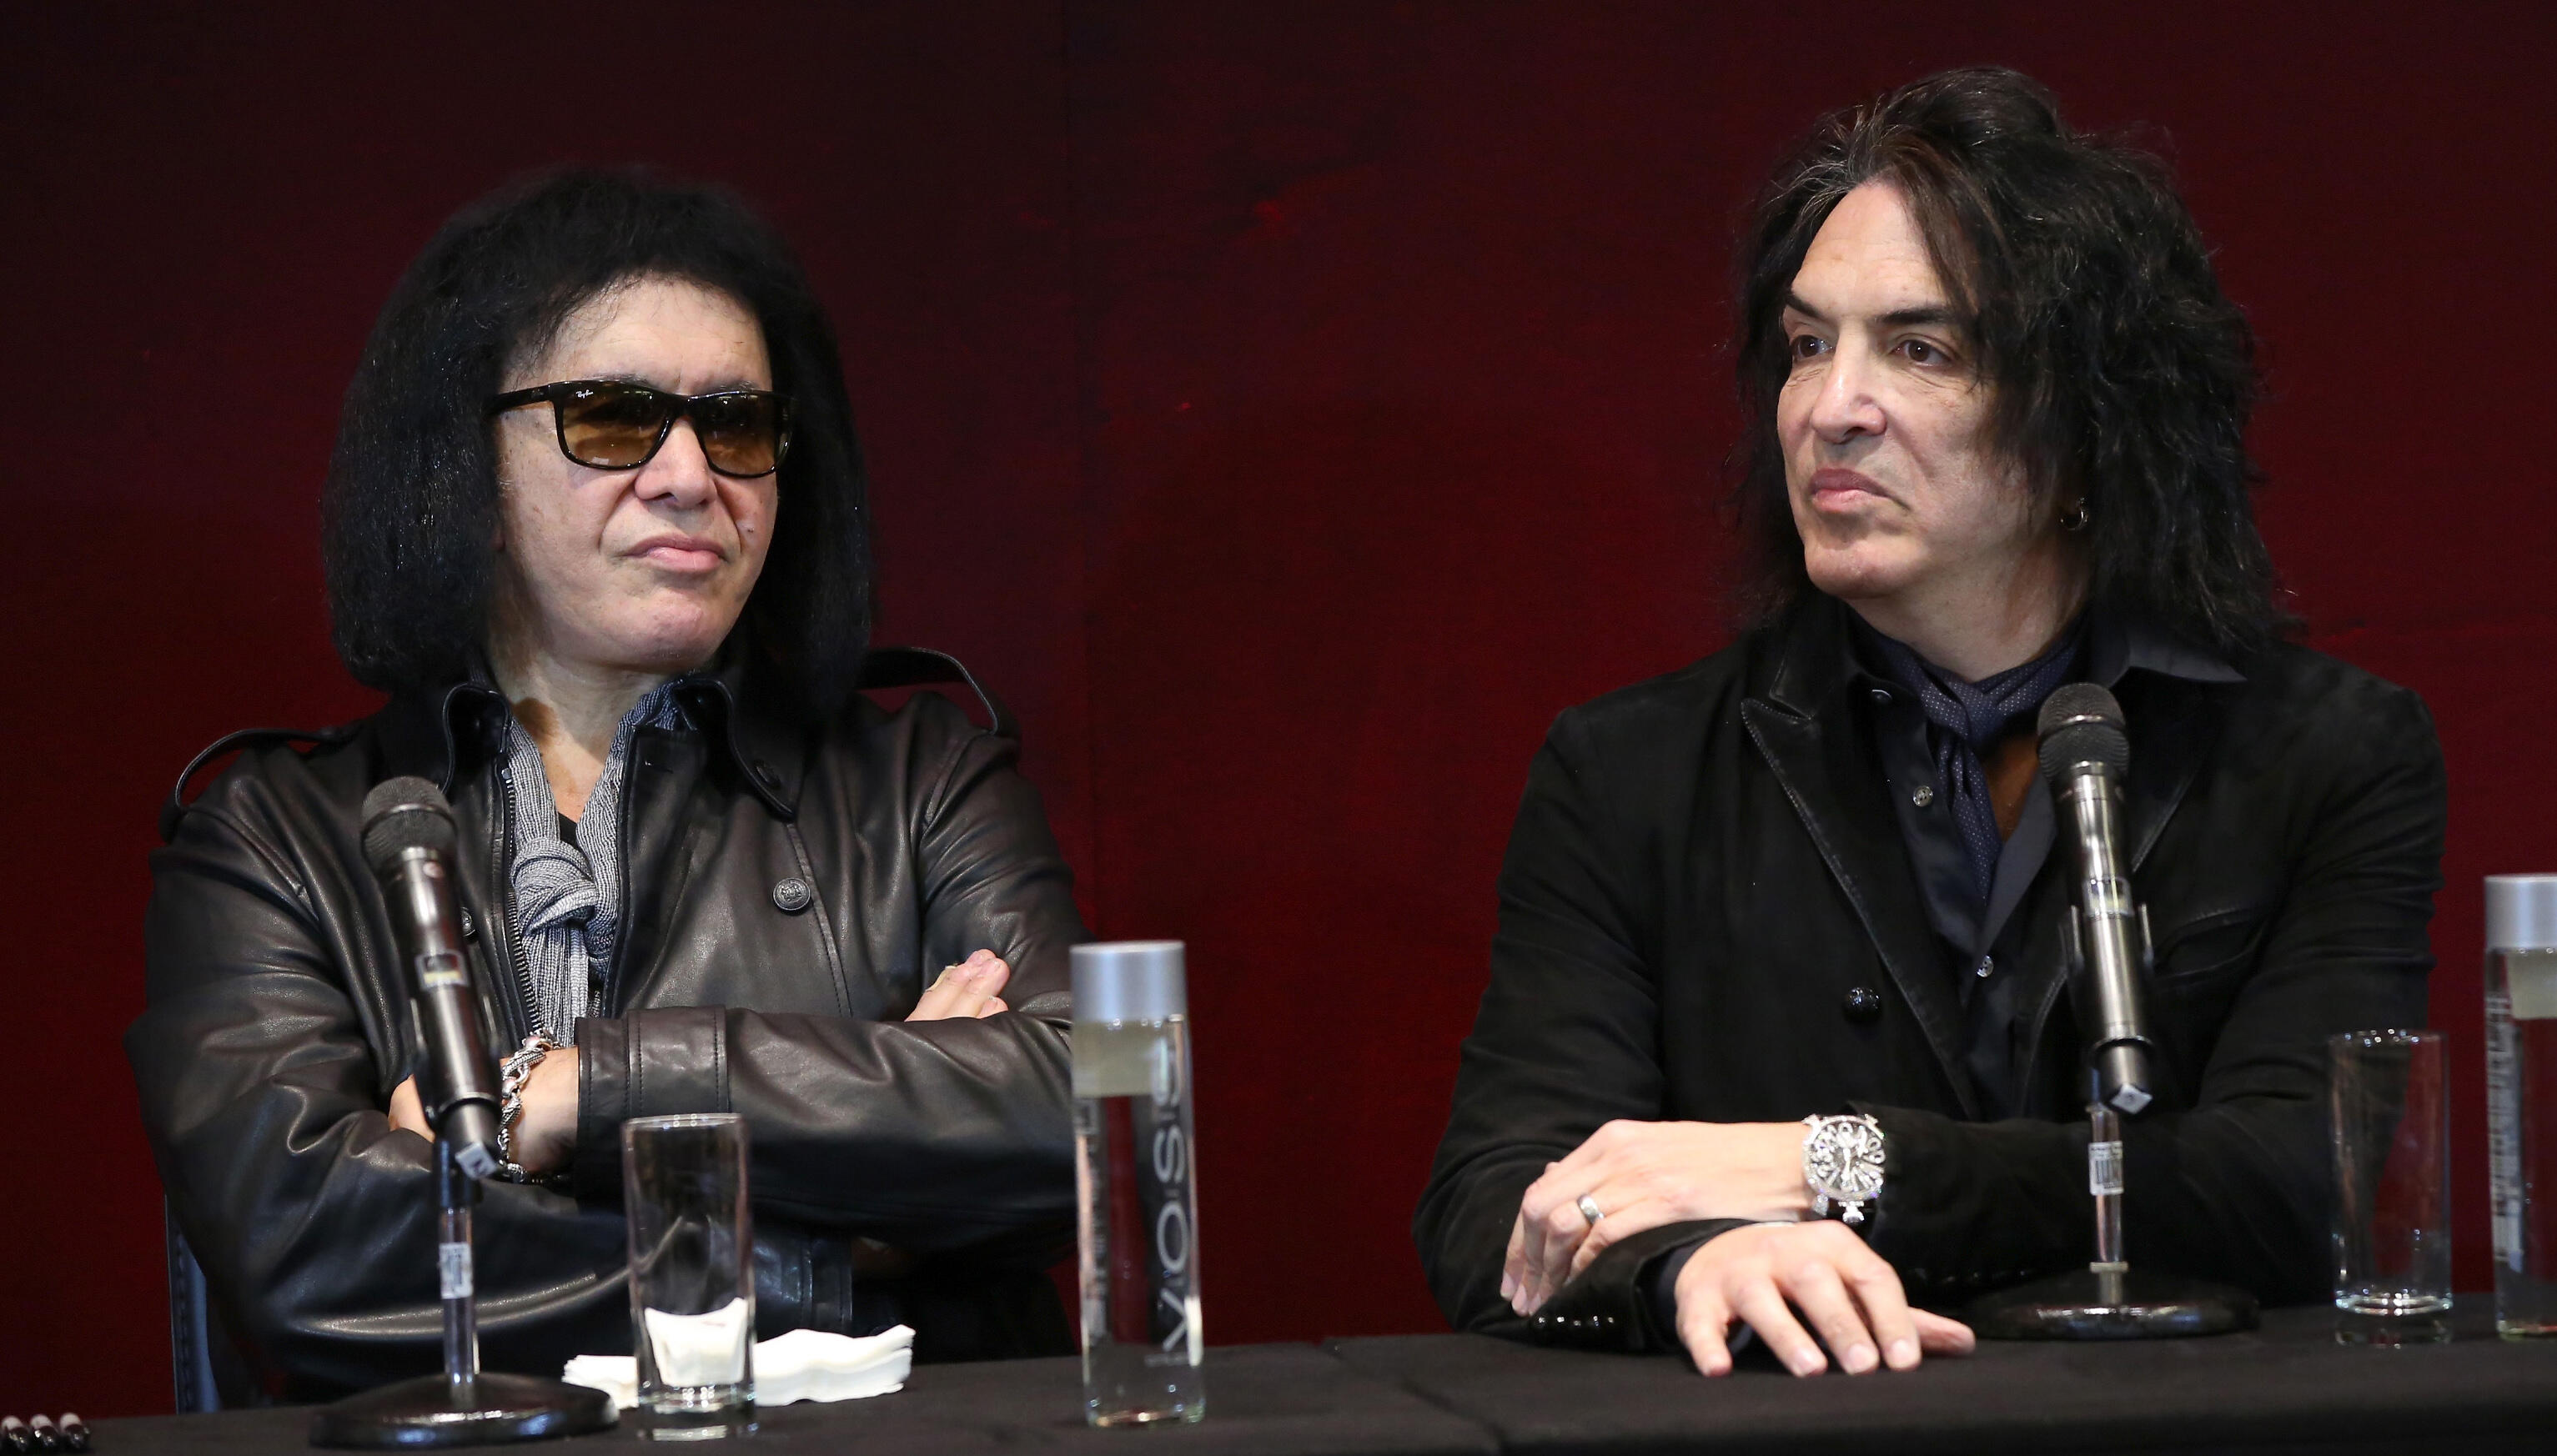 Revelations In New KISS Doc Will 'Upset Some Fans,' Says Gene Simmons